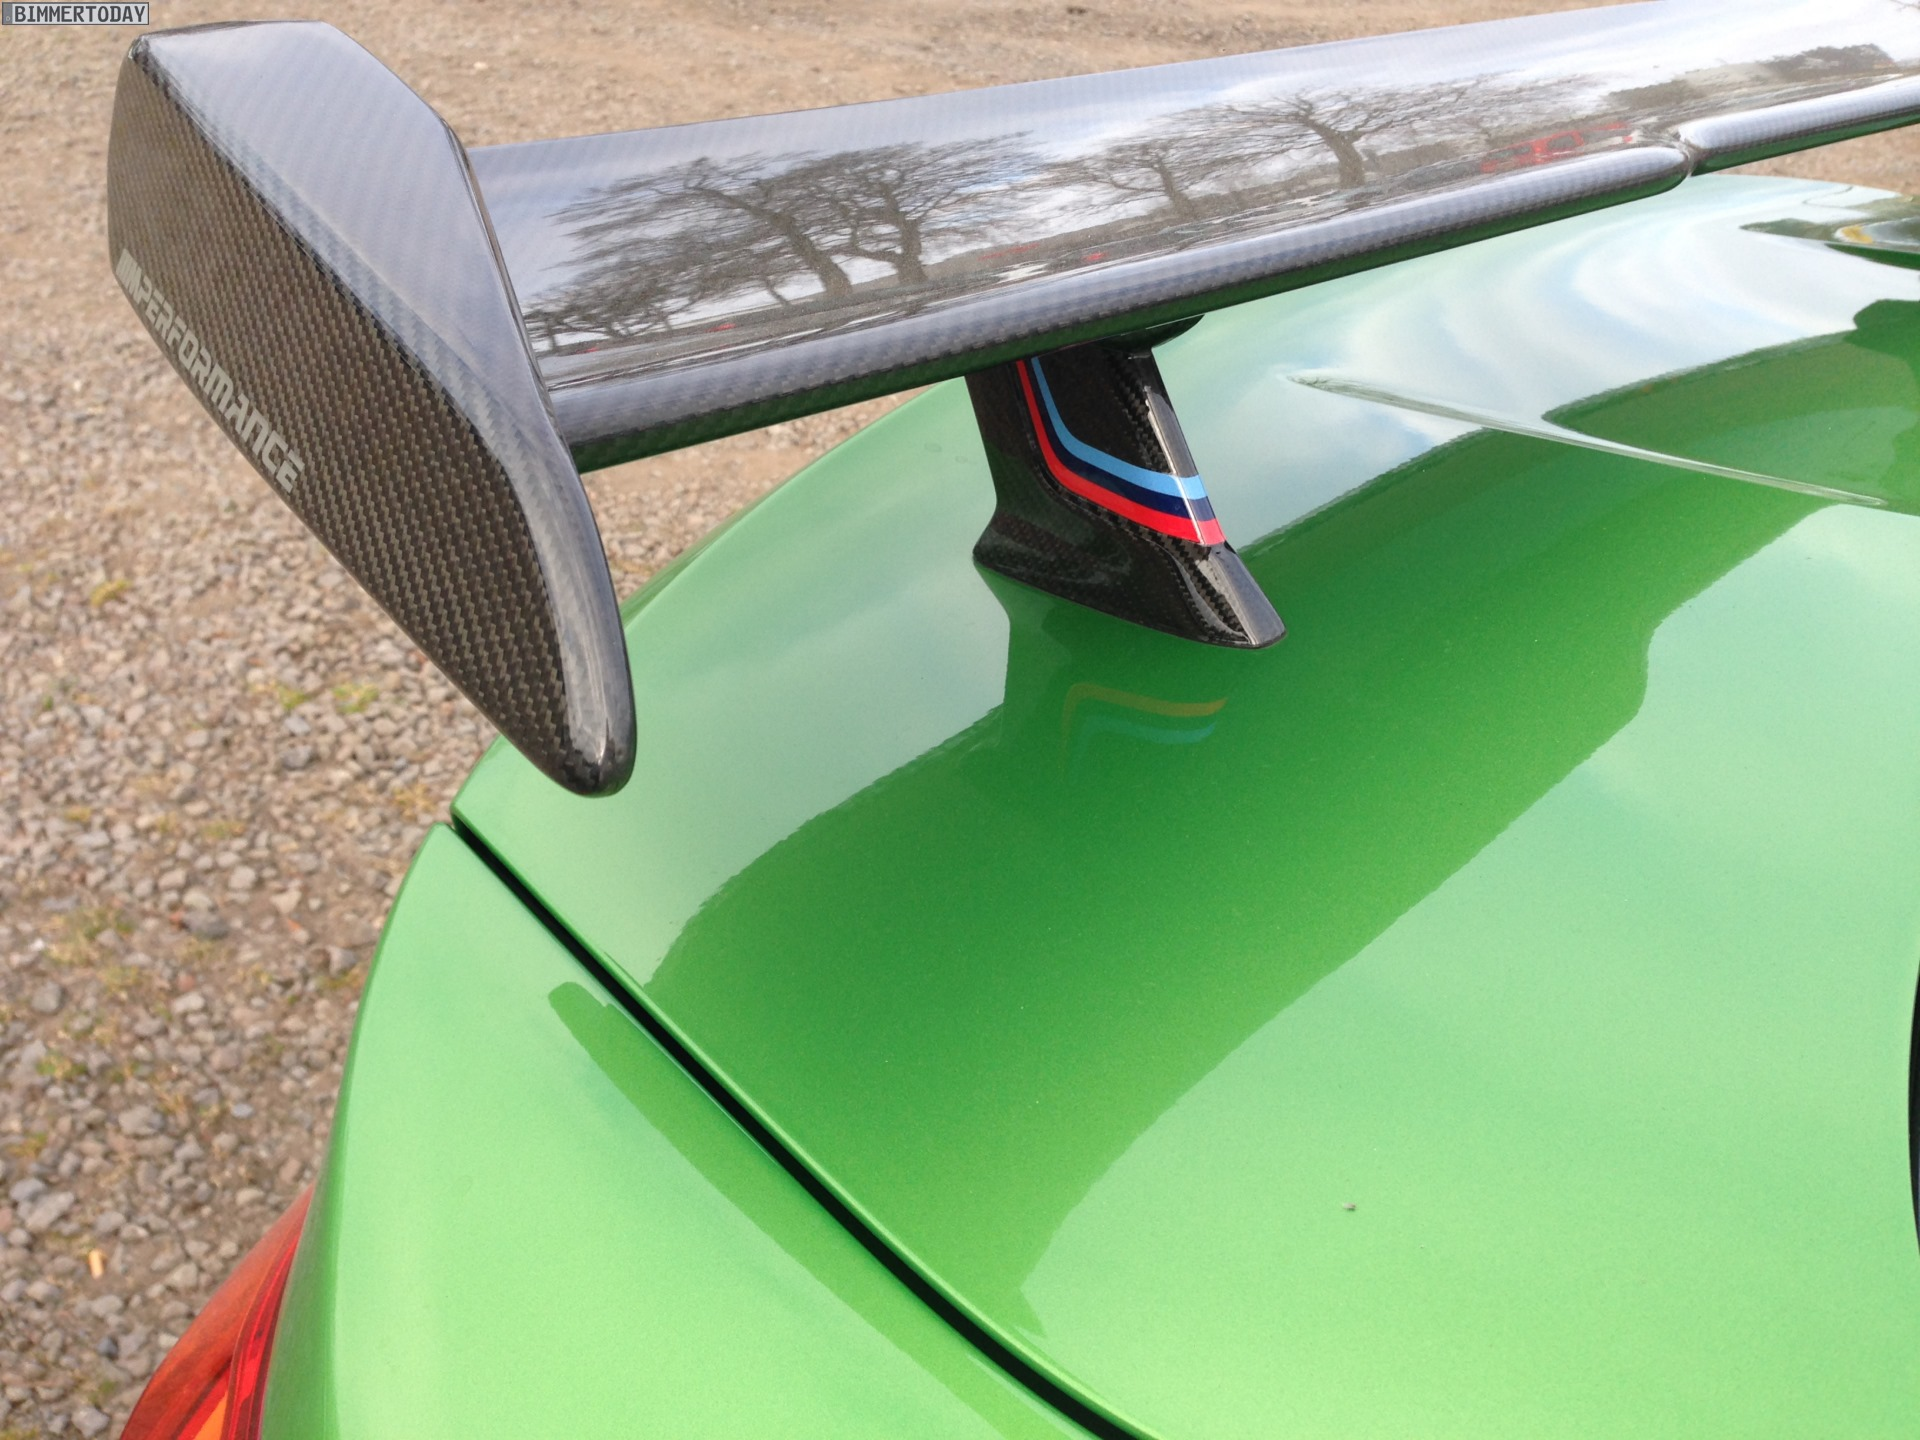 BMW M4 in Java Green: Marco Wittmann shows company car